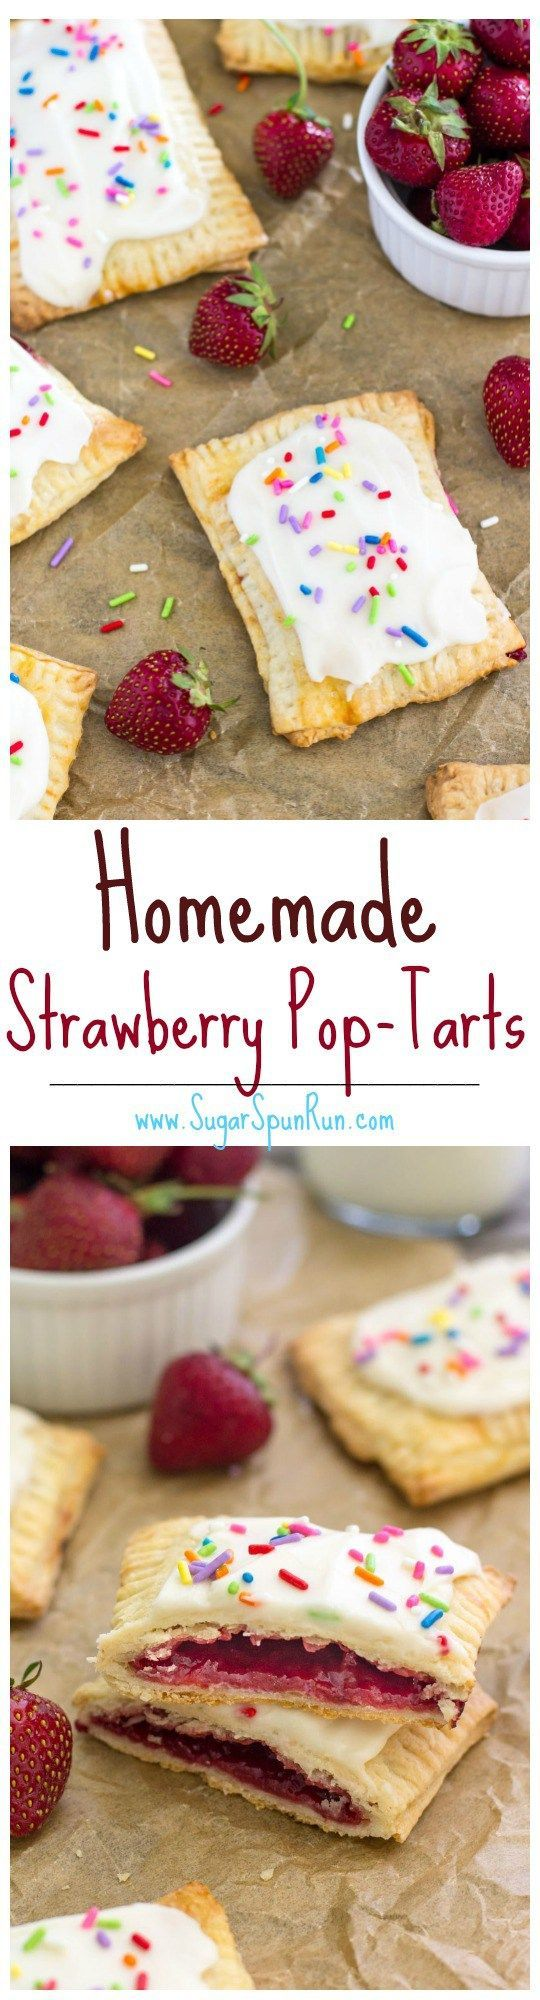 Homemade Strawberry Pop-Tarts -- SugarSpunRun